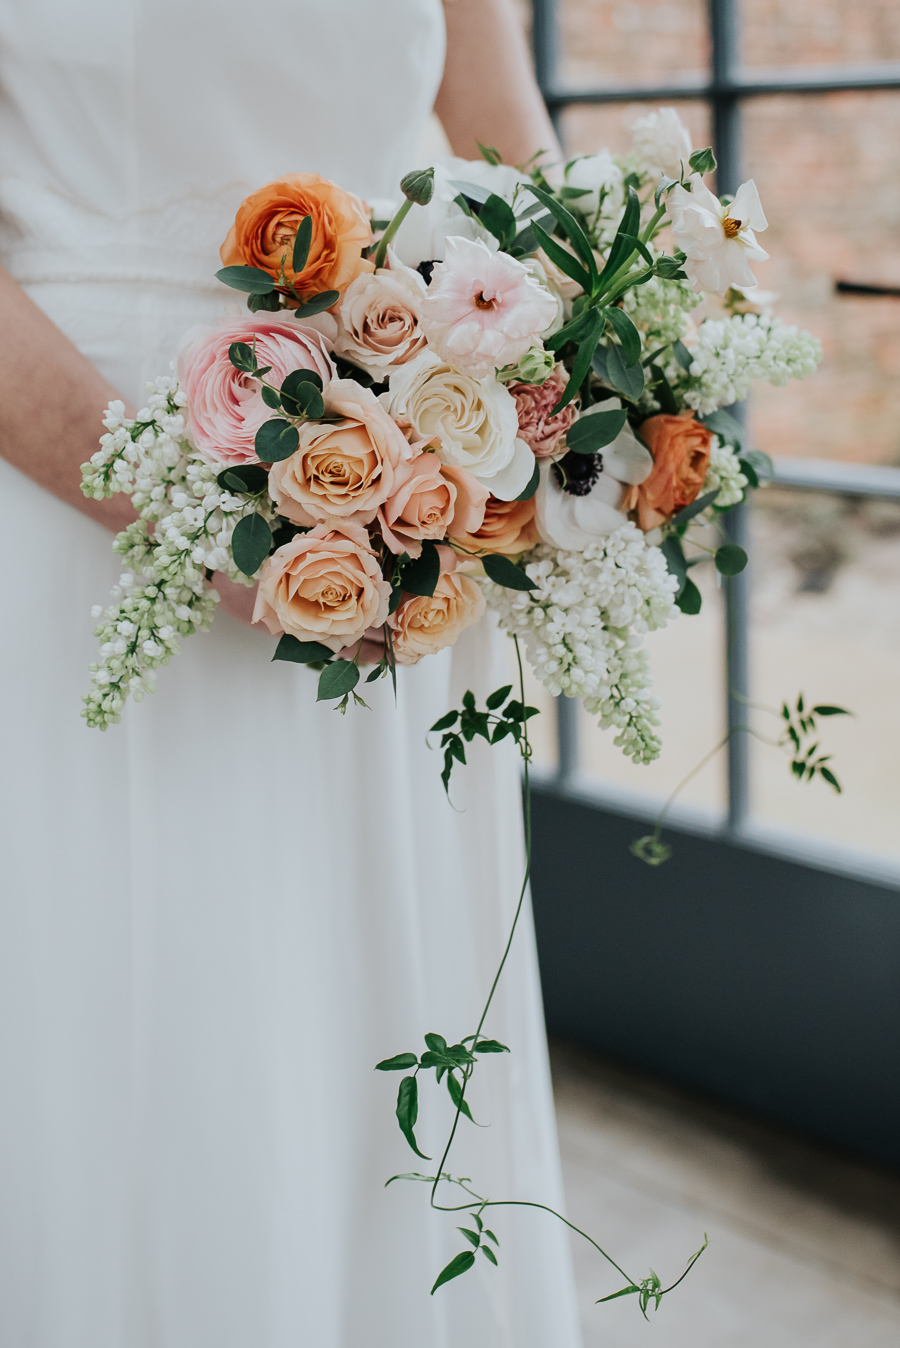 Michelle Cordner Photography on the English Wedding Blog (10)